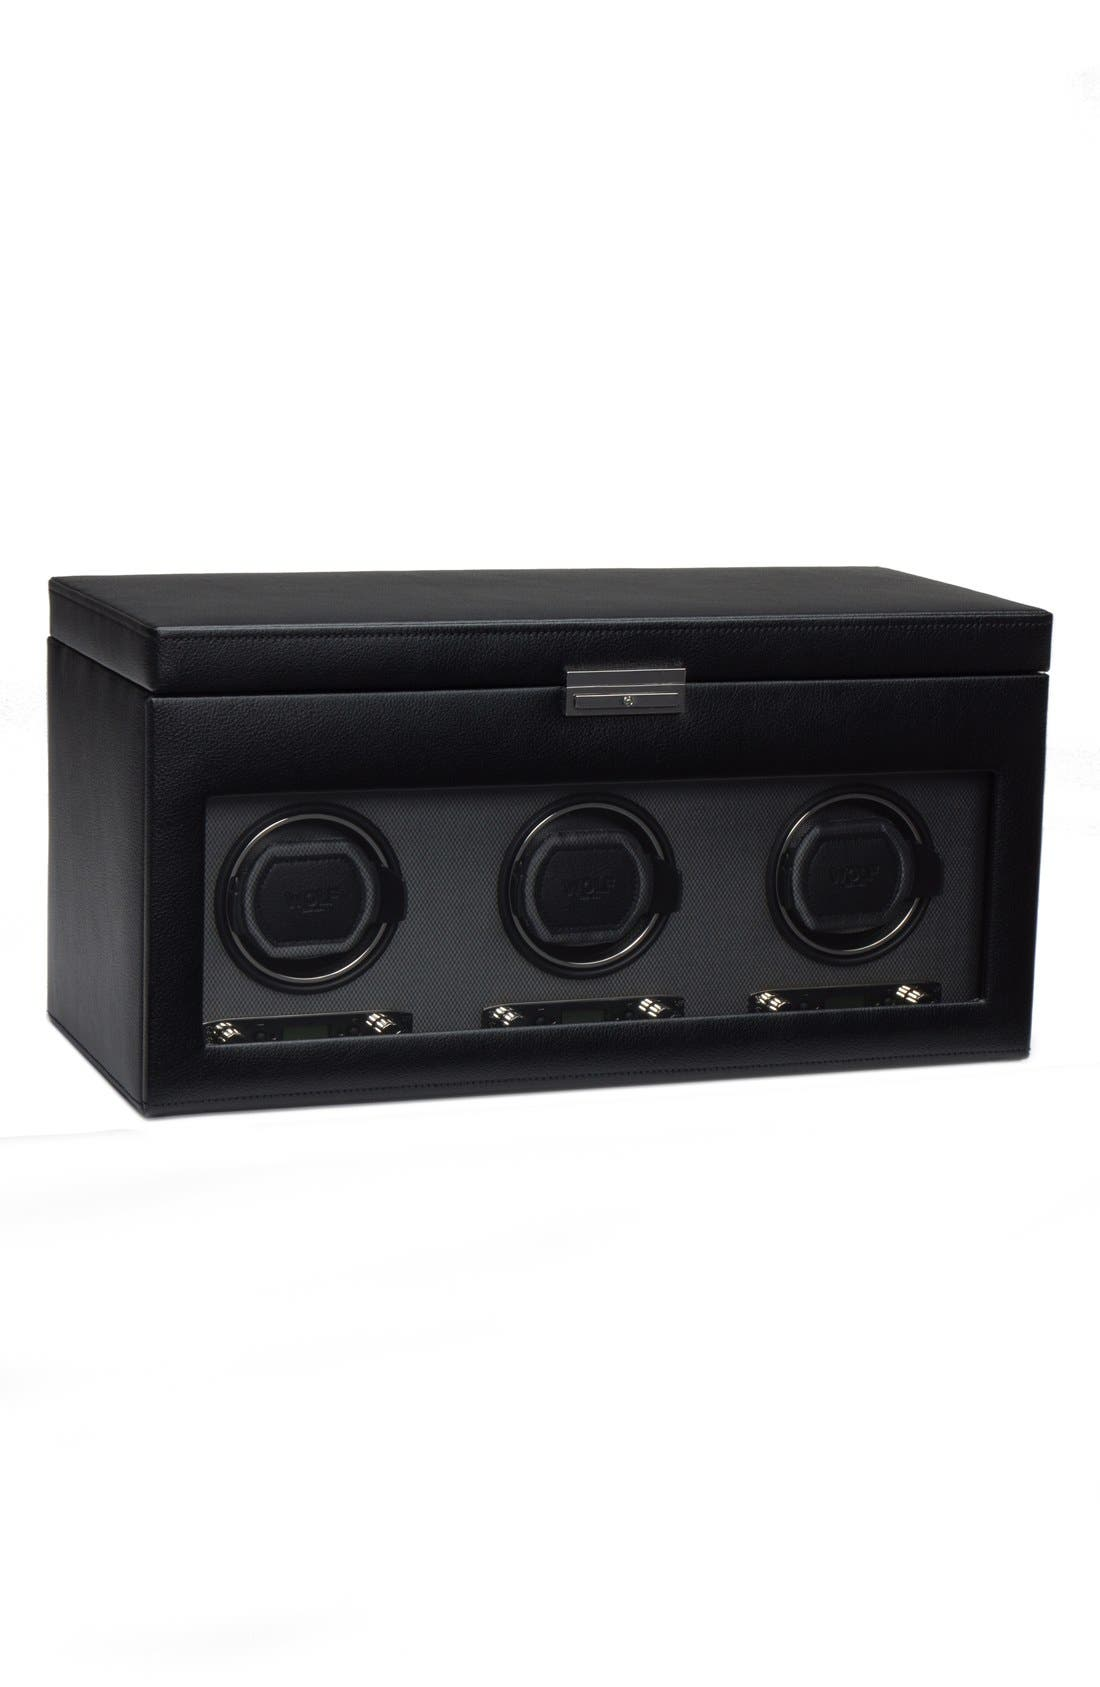 WOLF Viceroy Triple Watch Winder & Case